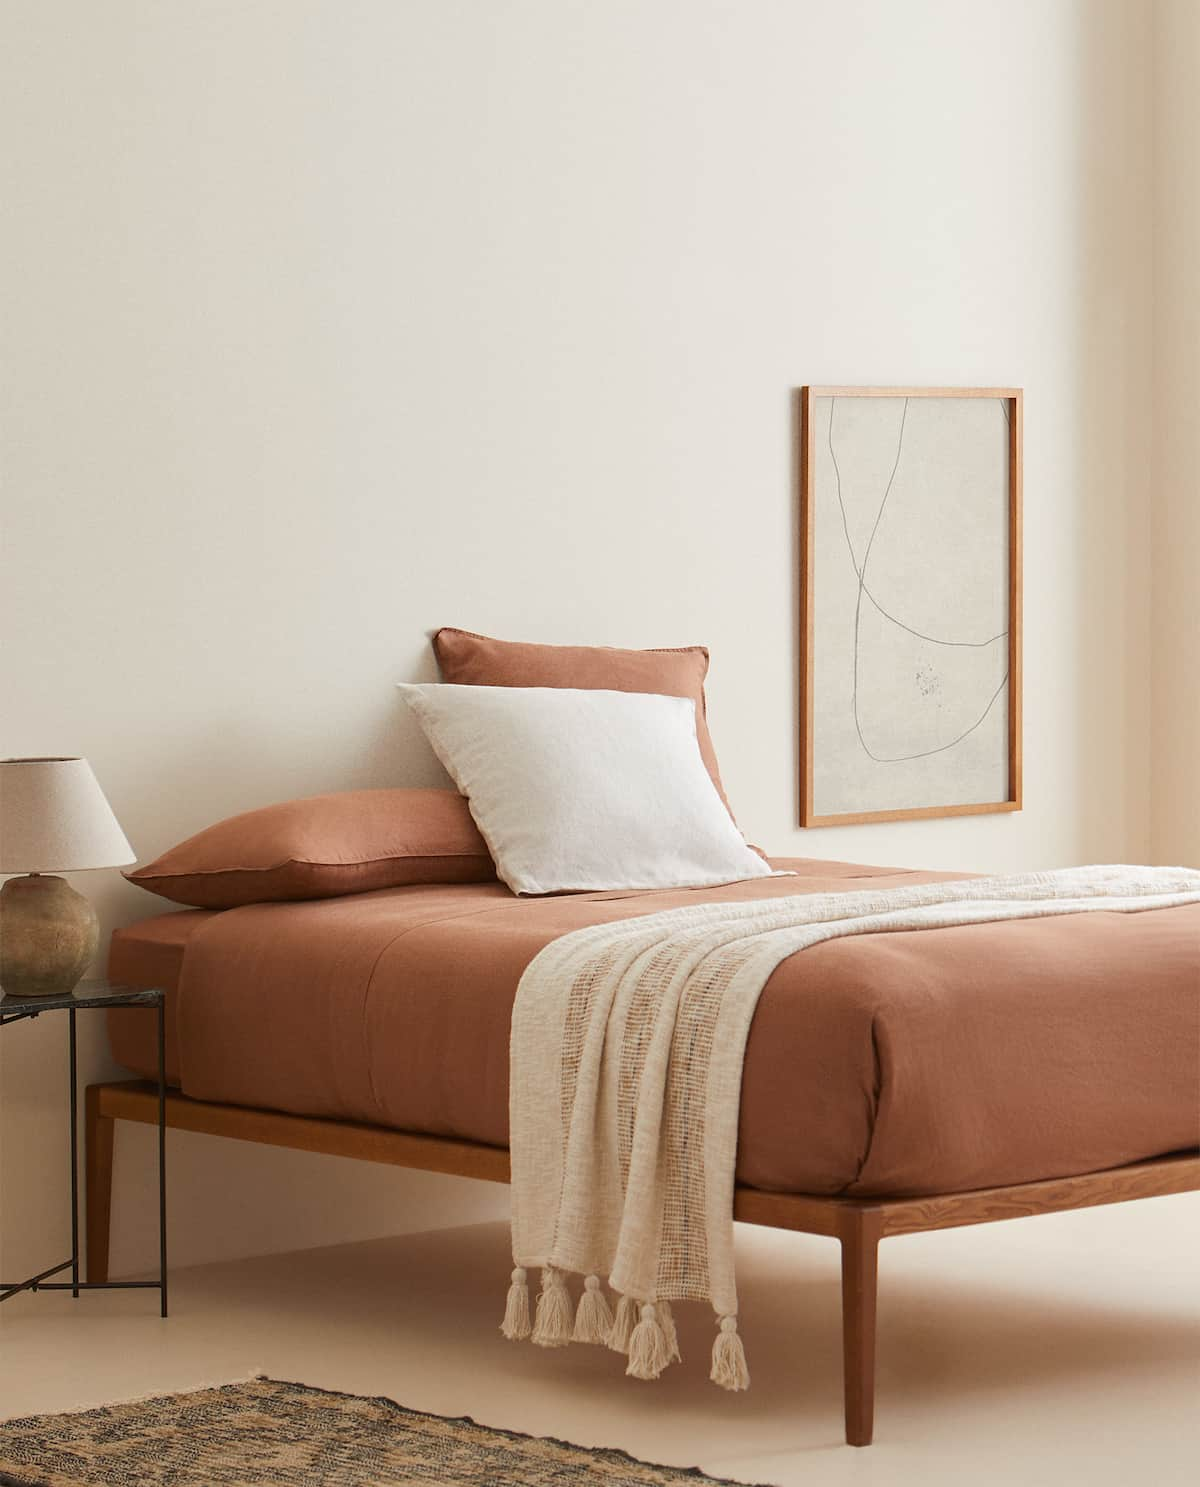 3 Calm looking bedrooms from Zara Home - Daily Dream Decor